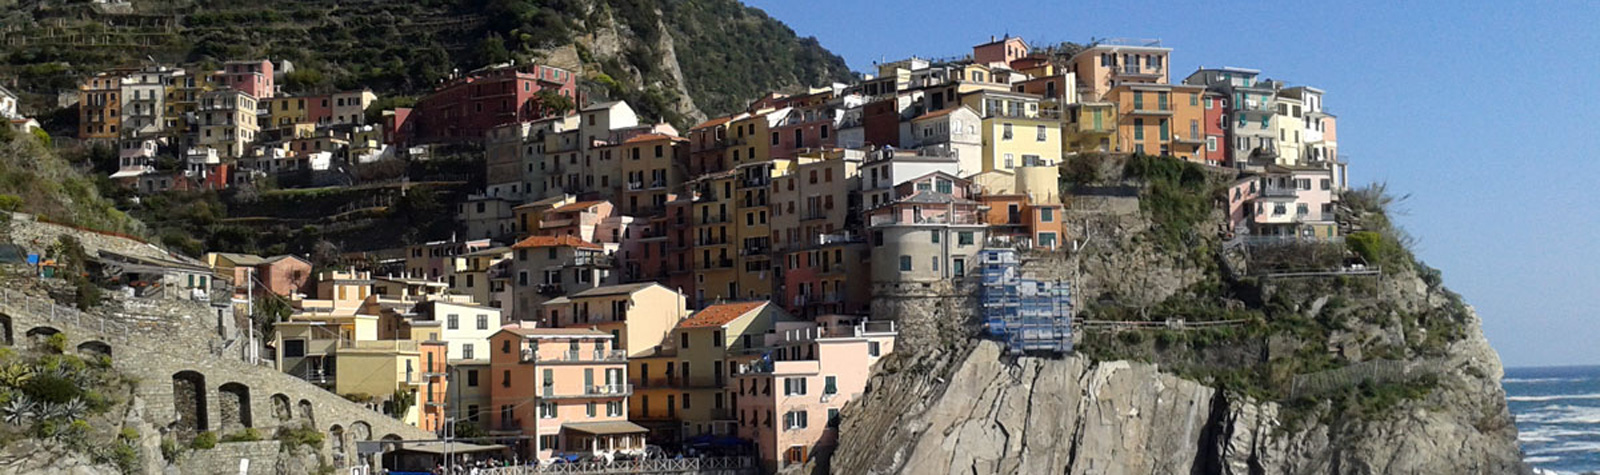 2 days in Cinque Terre: How to Make the Most of Your Visit